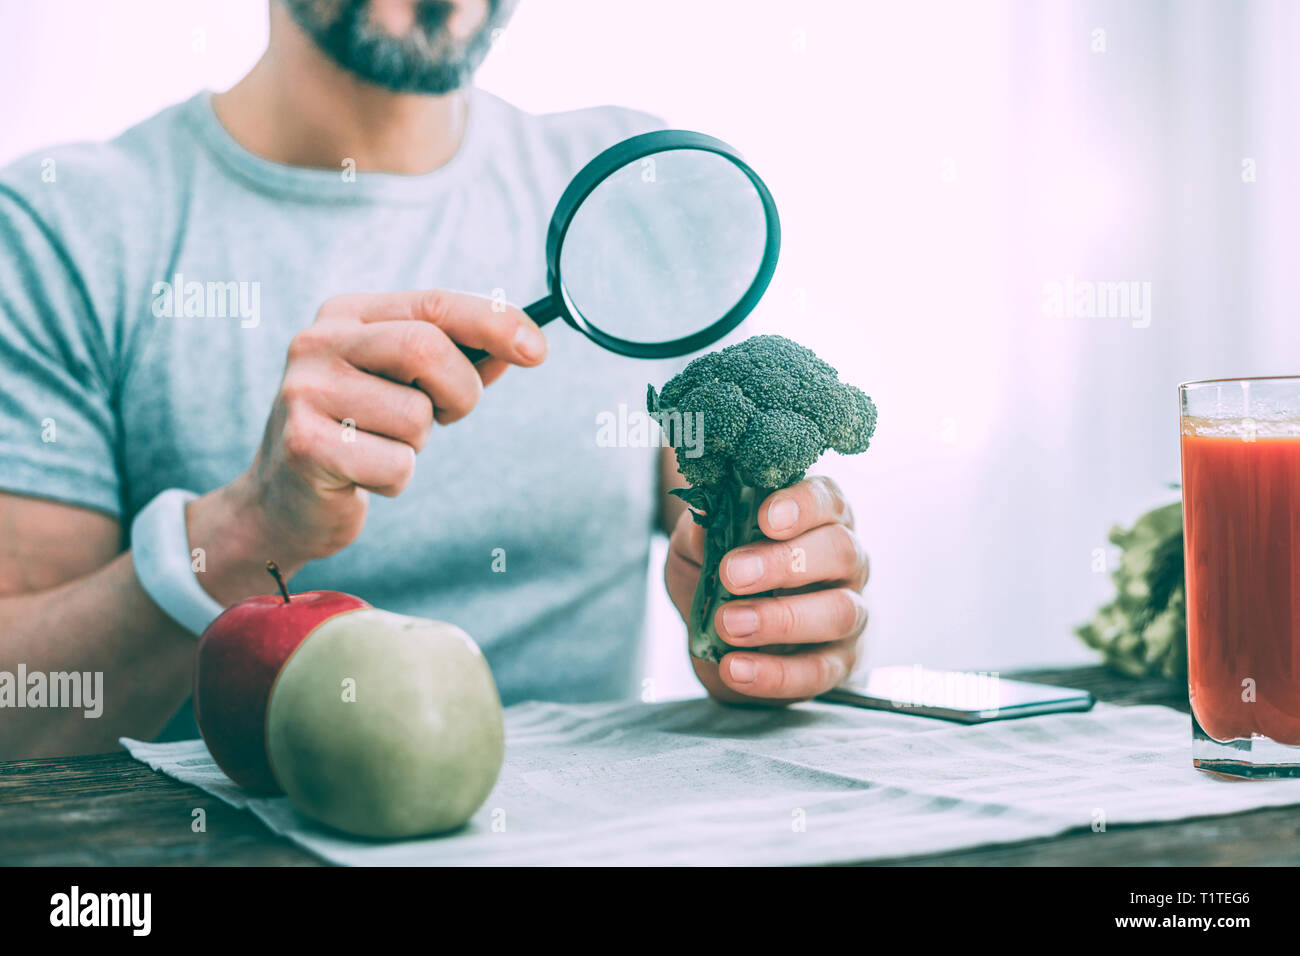 Motivated interested man learning different types of vegetables - Stock Image